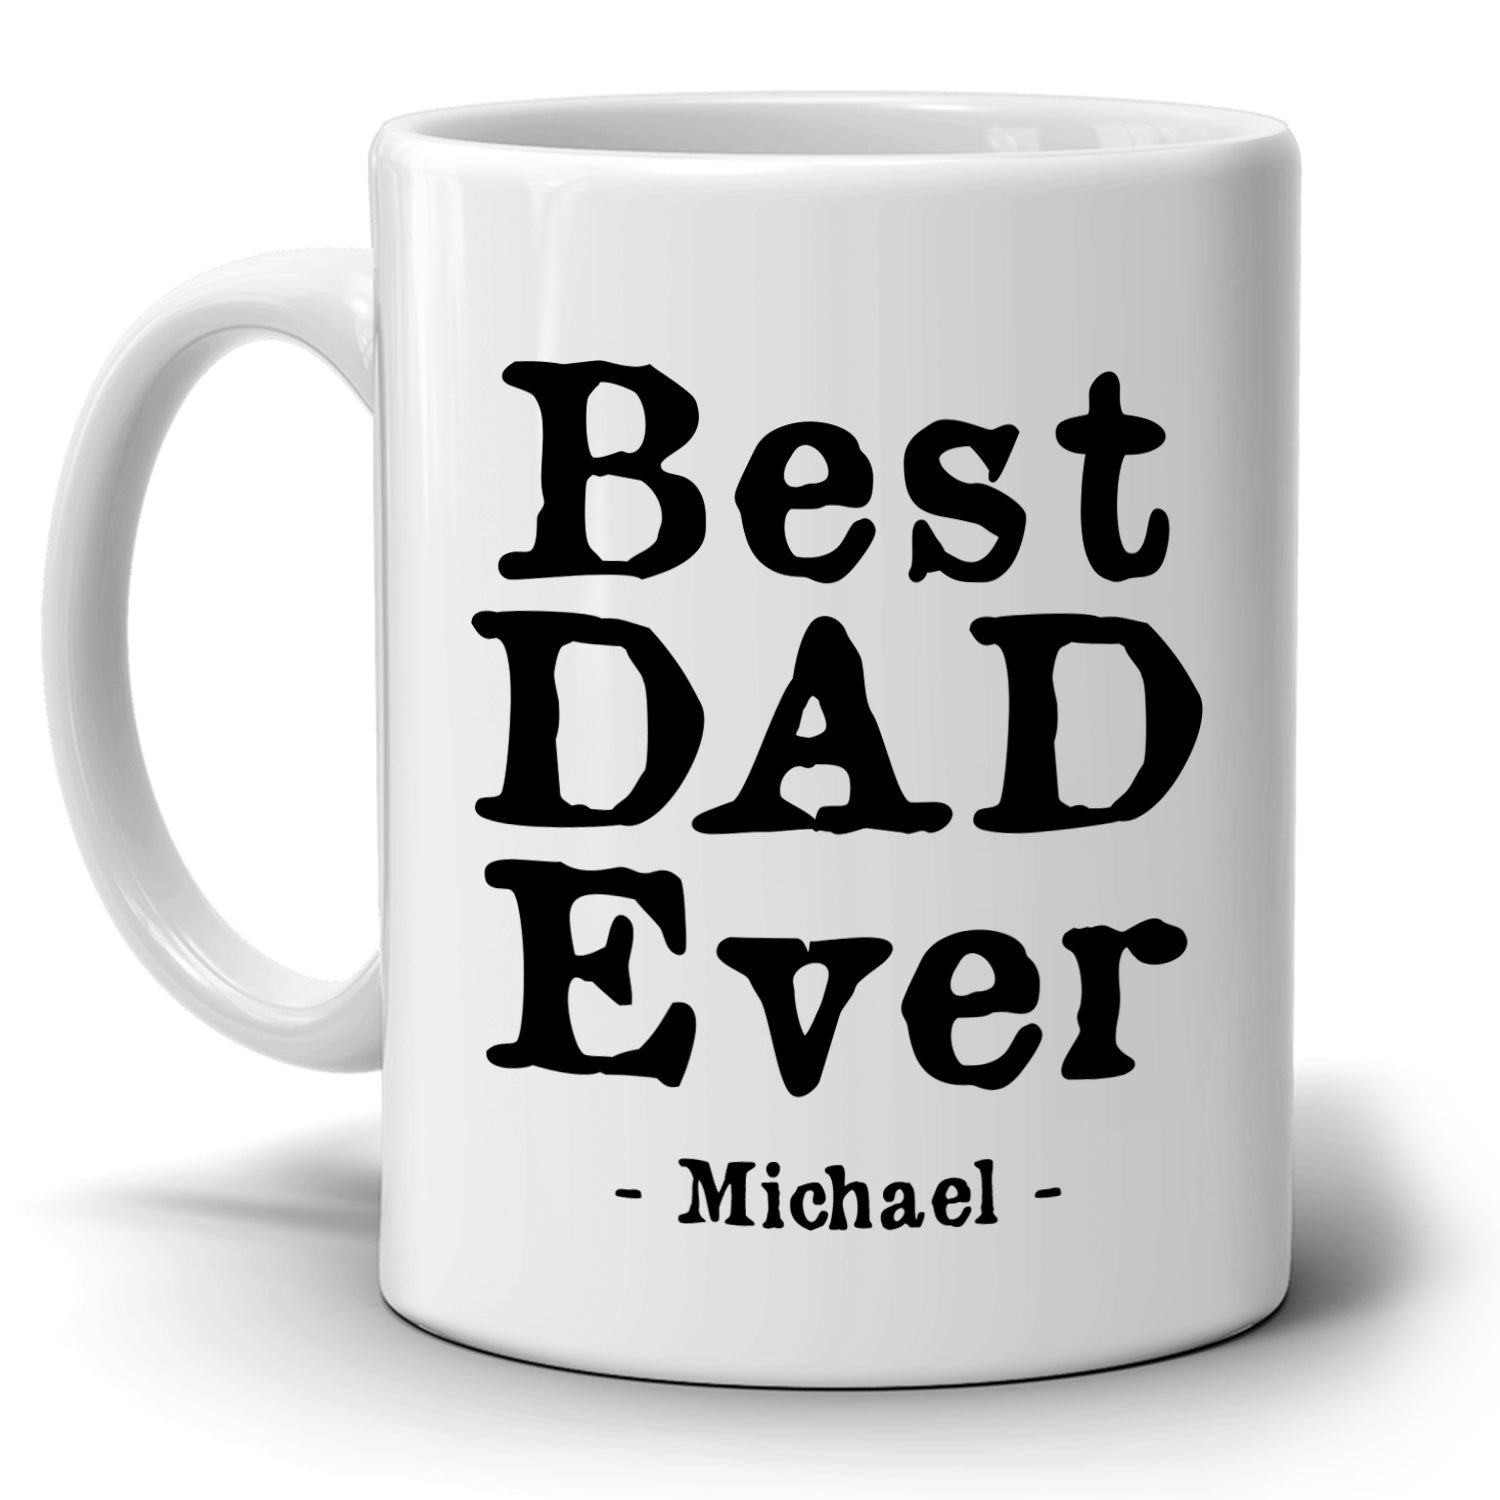 Personalized!! Best Dad Ever Coffee Mug, Gift for Papa and Grandpa ...